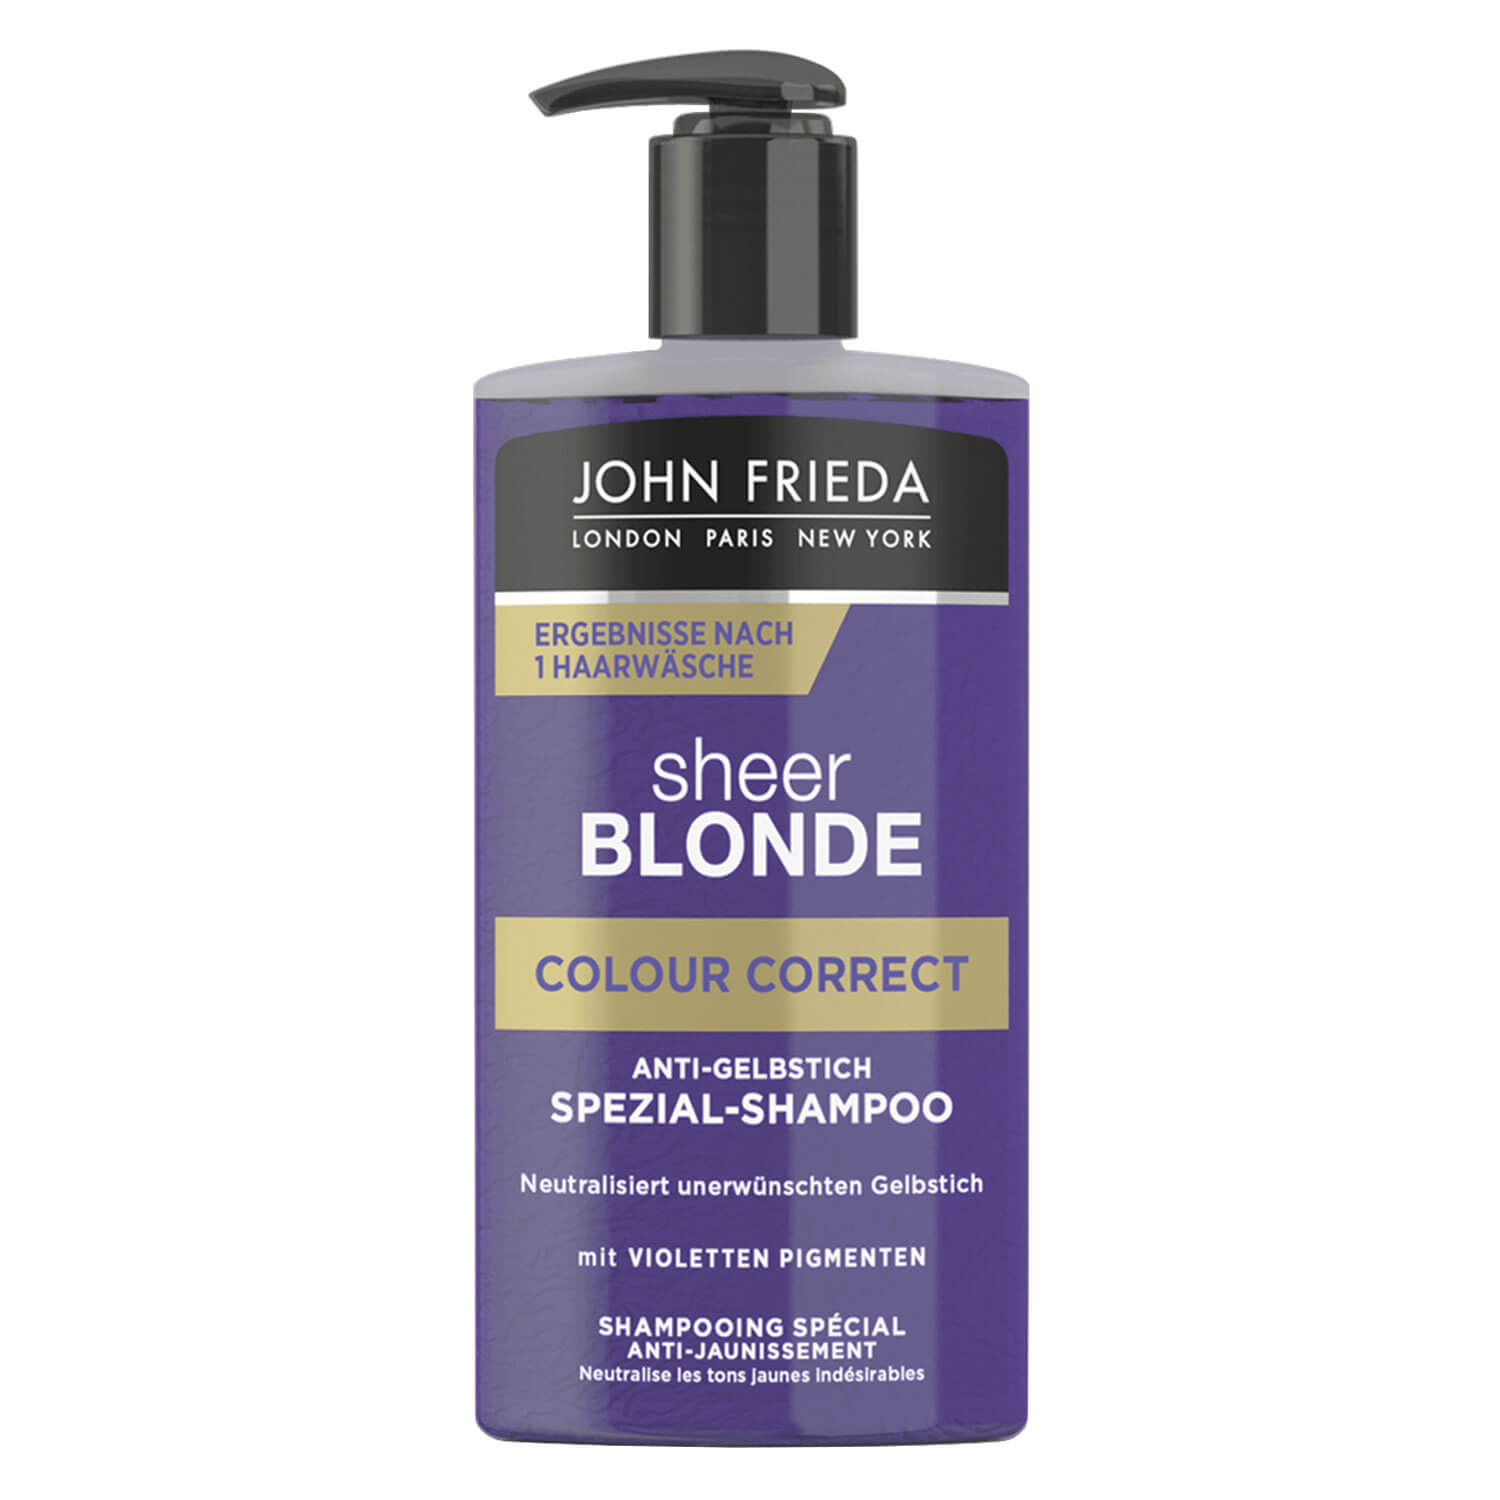 Sheer Blonde - Colour Correct Anti-Gelbstich Spezial-Shampoo - 200ml